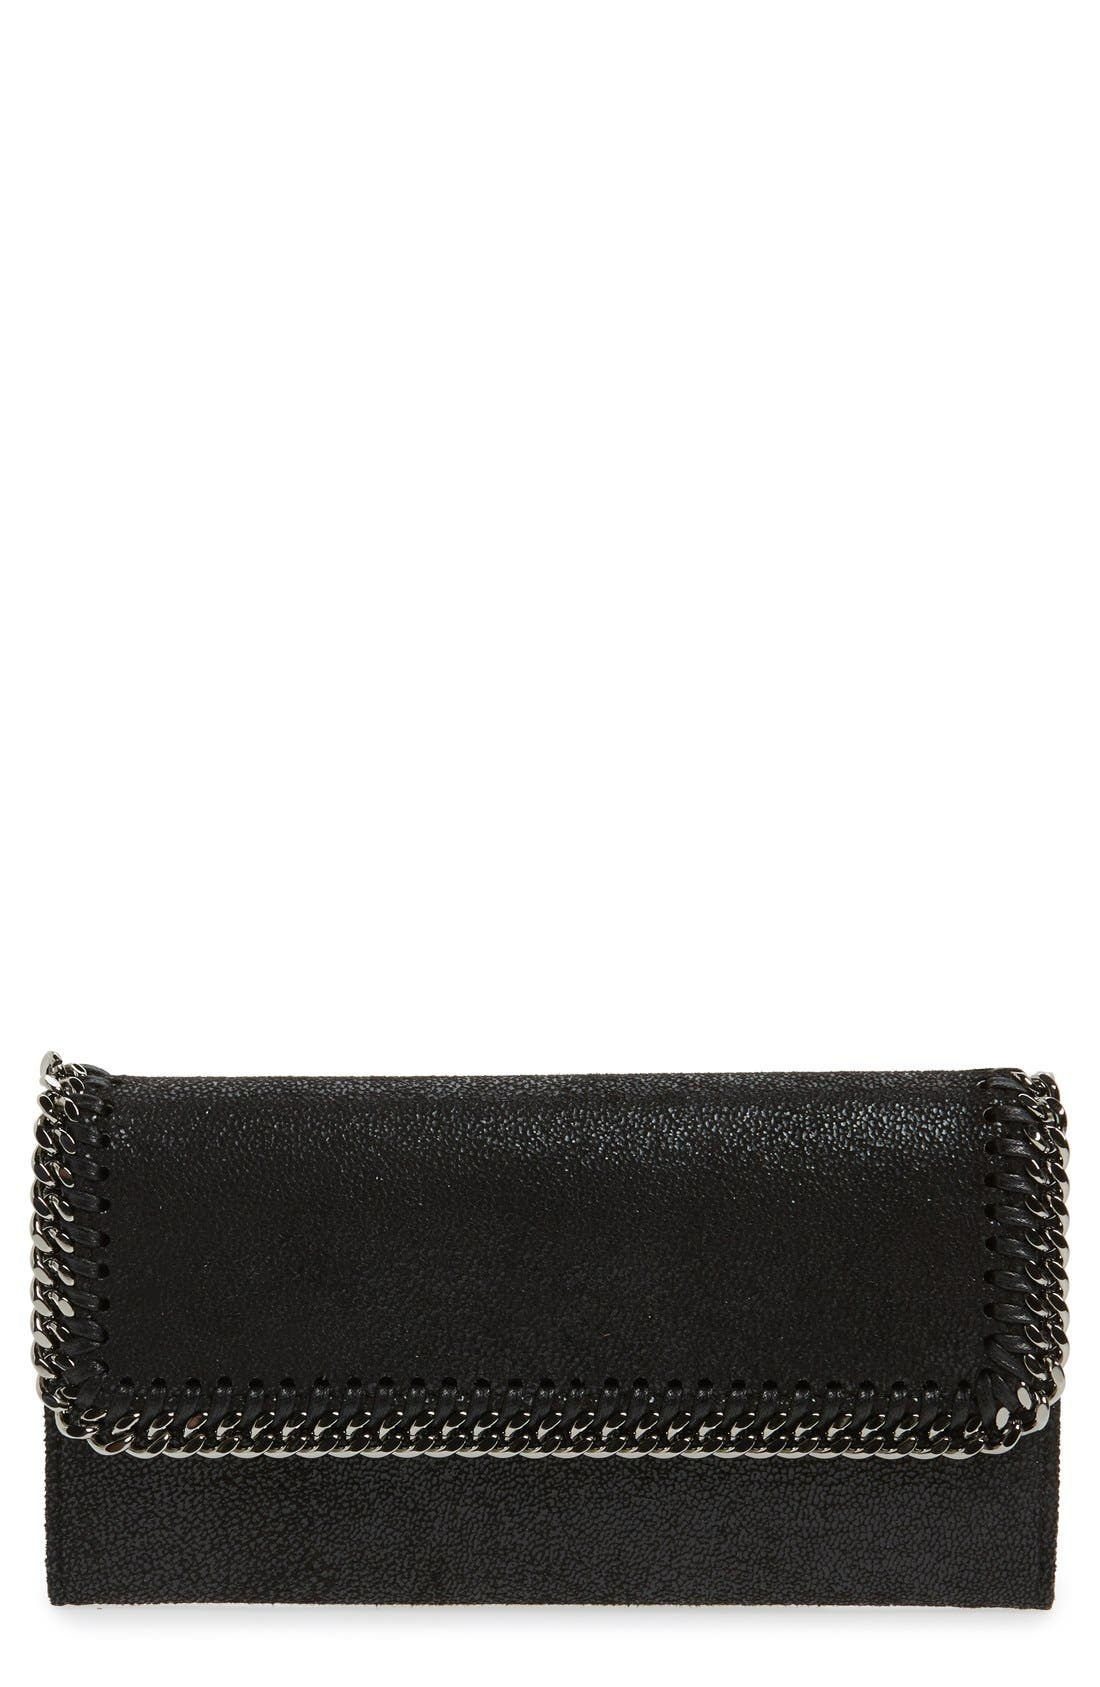 Main Image - Stella McCartney 'Falabella - Rainbow POP' Faux Leather Continental Wallet